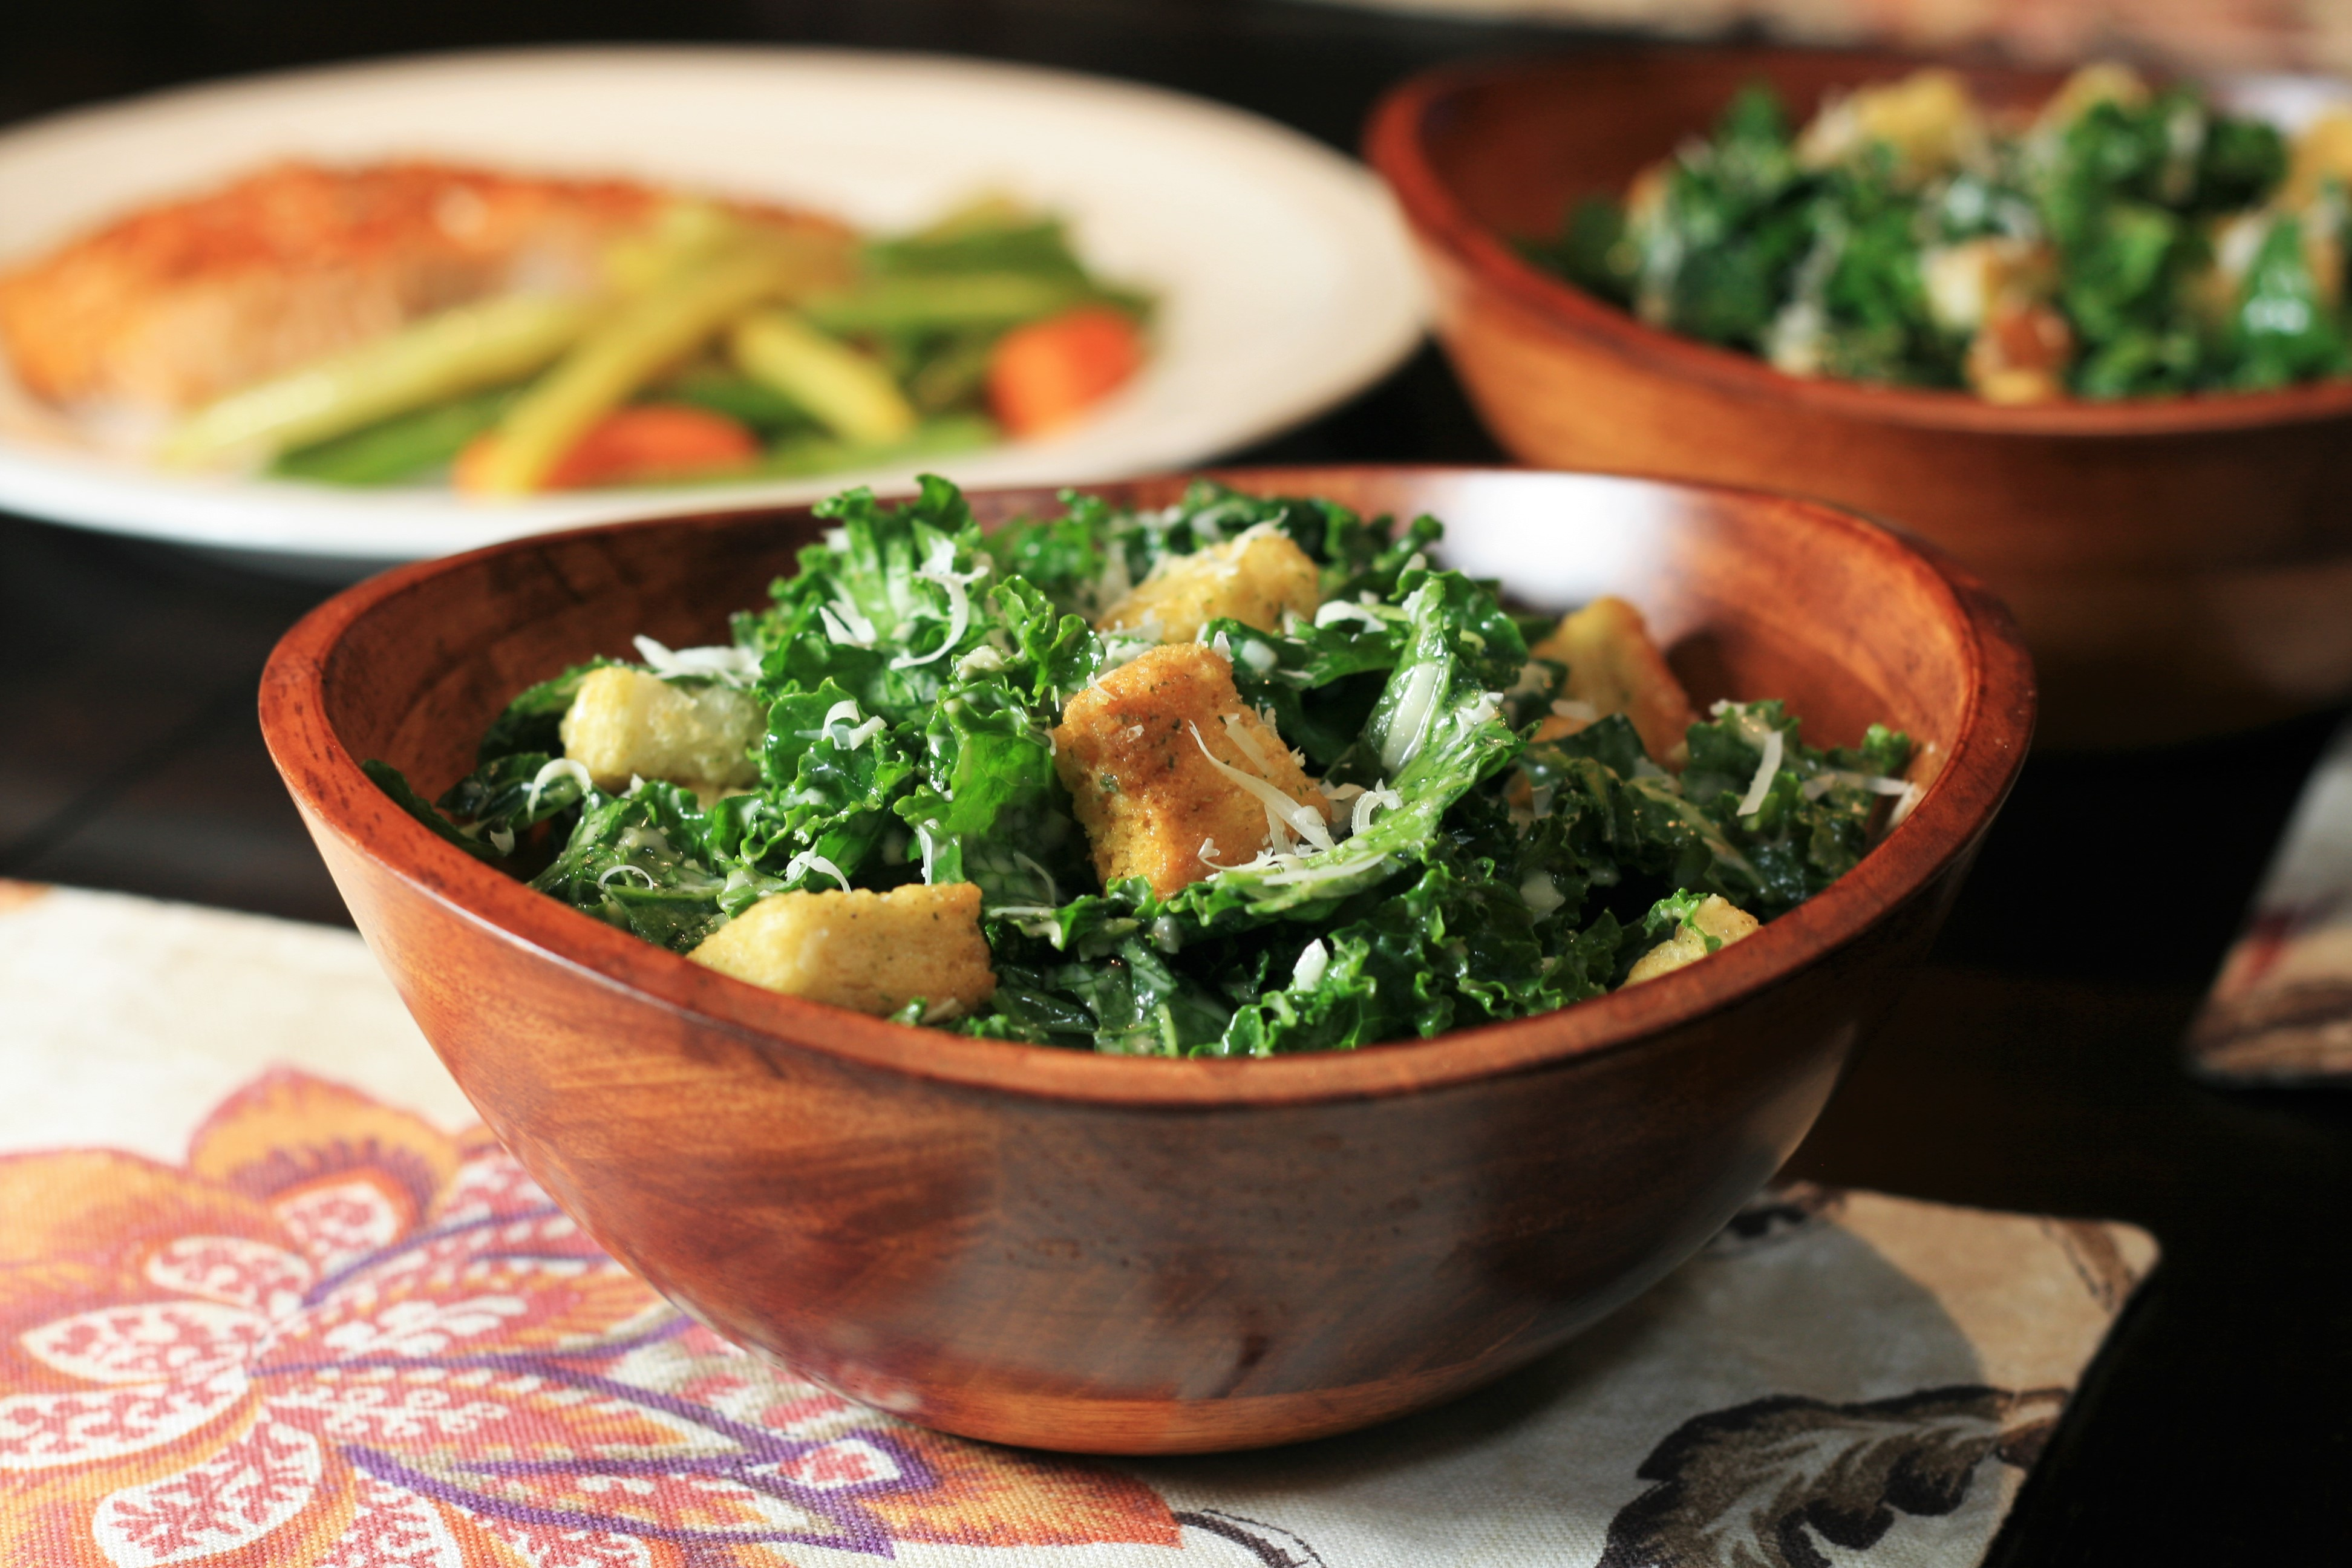 All Kale Caesar